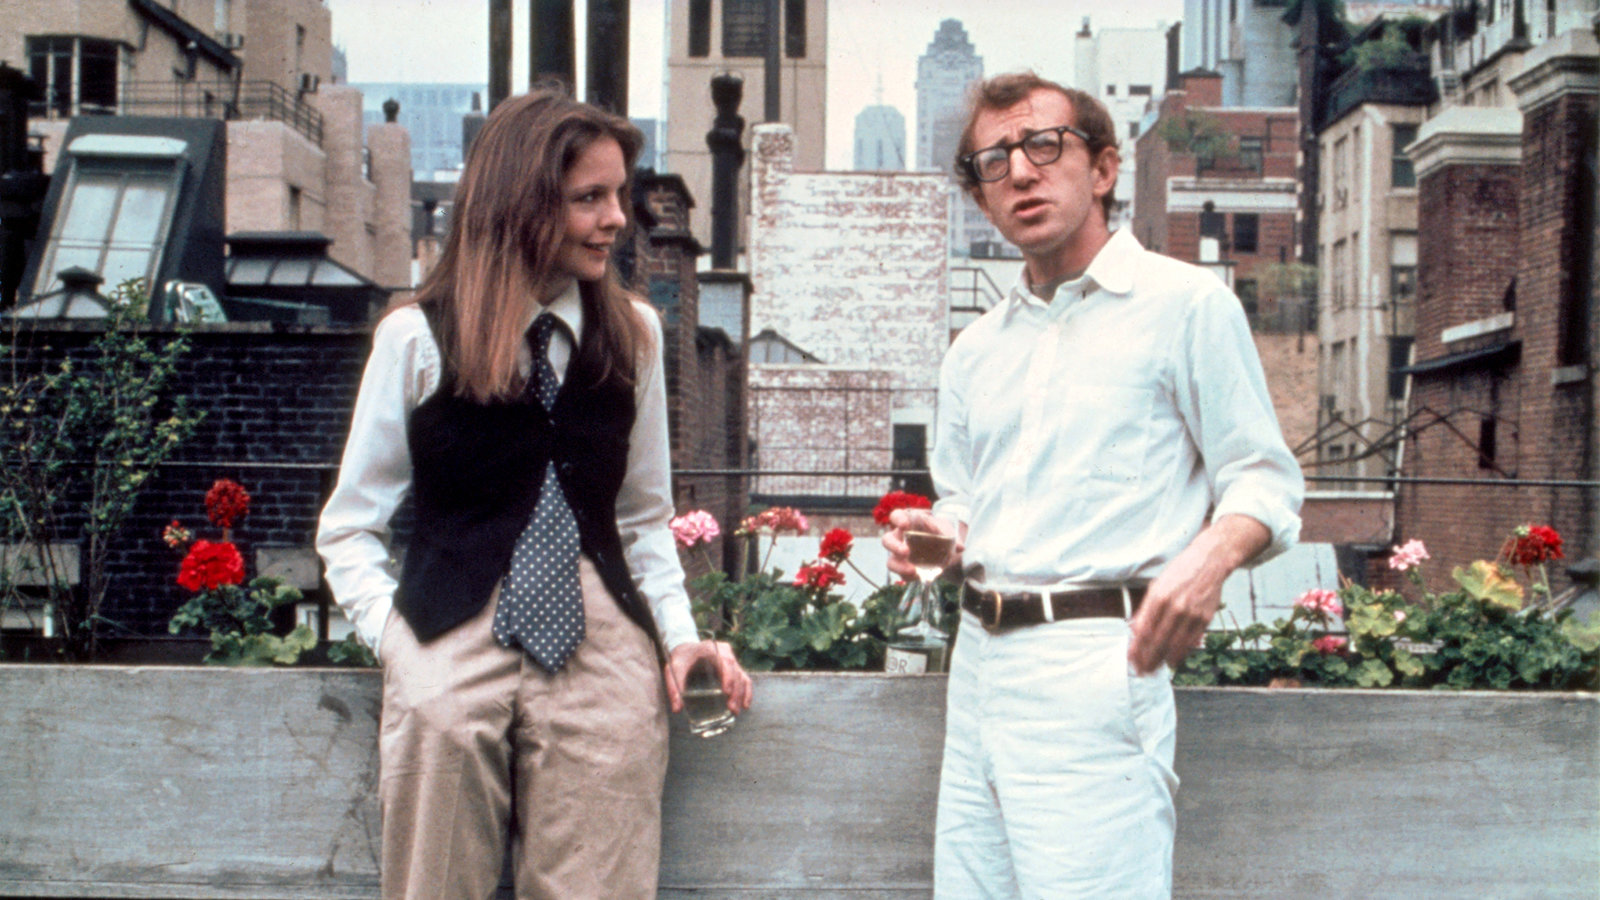 annie-hall-watching-recommendation-videoSixteenByNineJumbo1600-v4